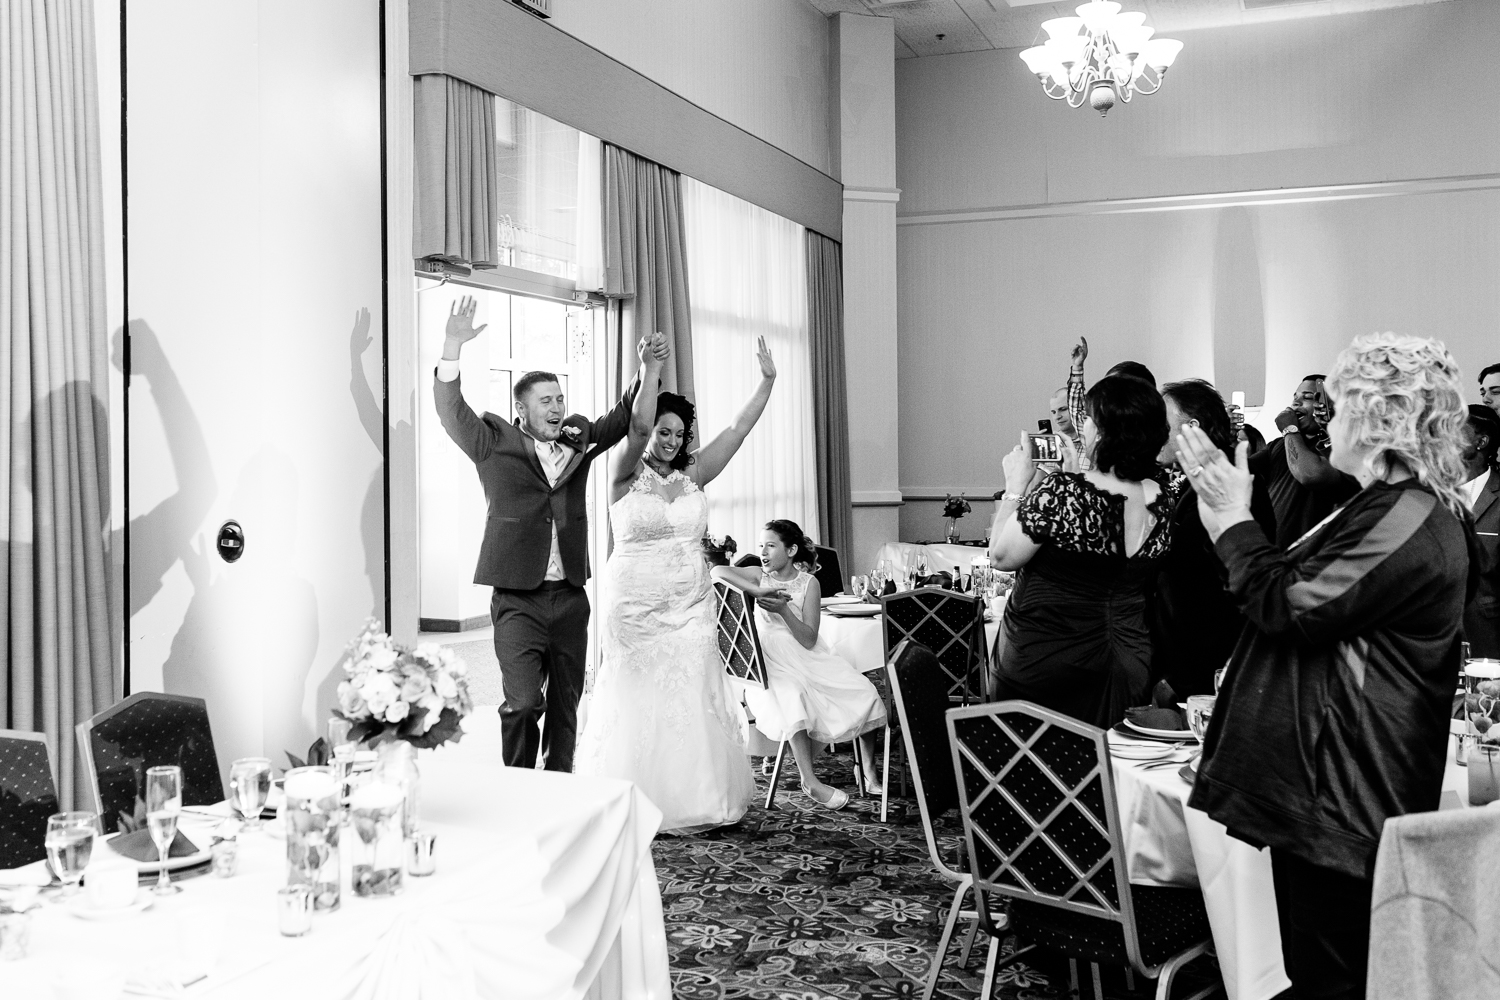 A black and white image of the bride and groom entering the reception. They have their hands up in the air.